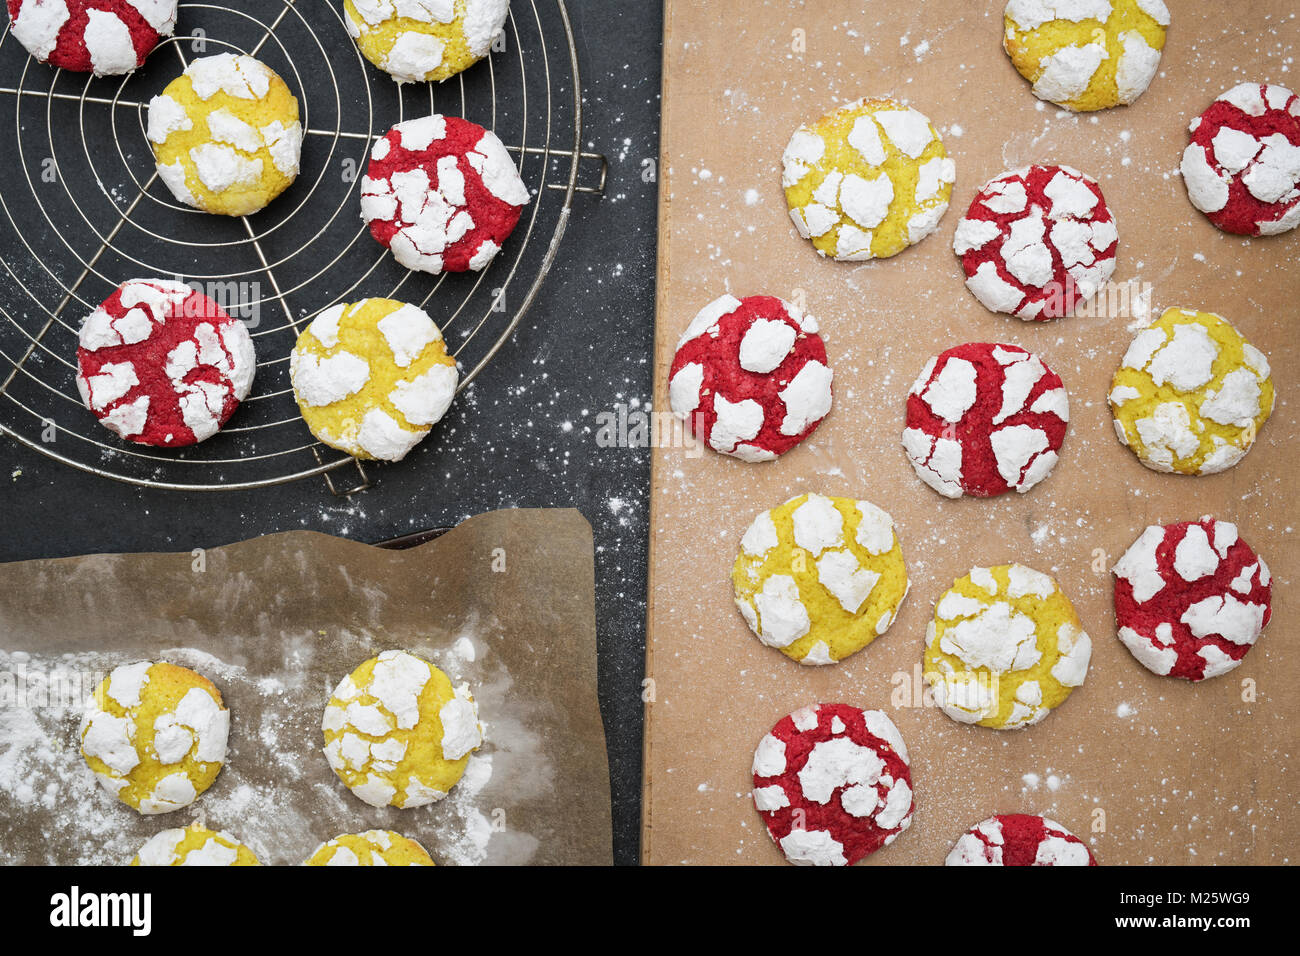 Homemade Lemon and Raspberry Crinkle Cookies on a cooling rack on slate background - Stock Image